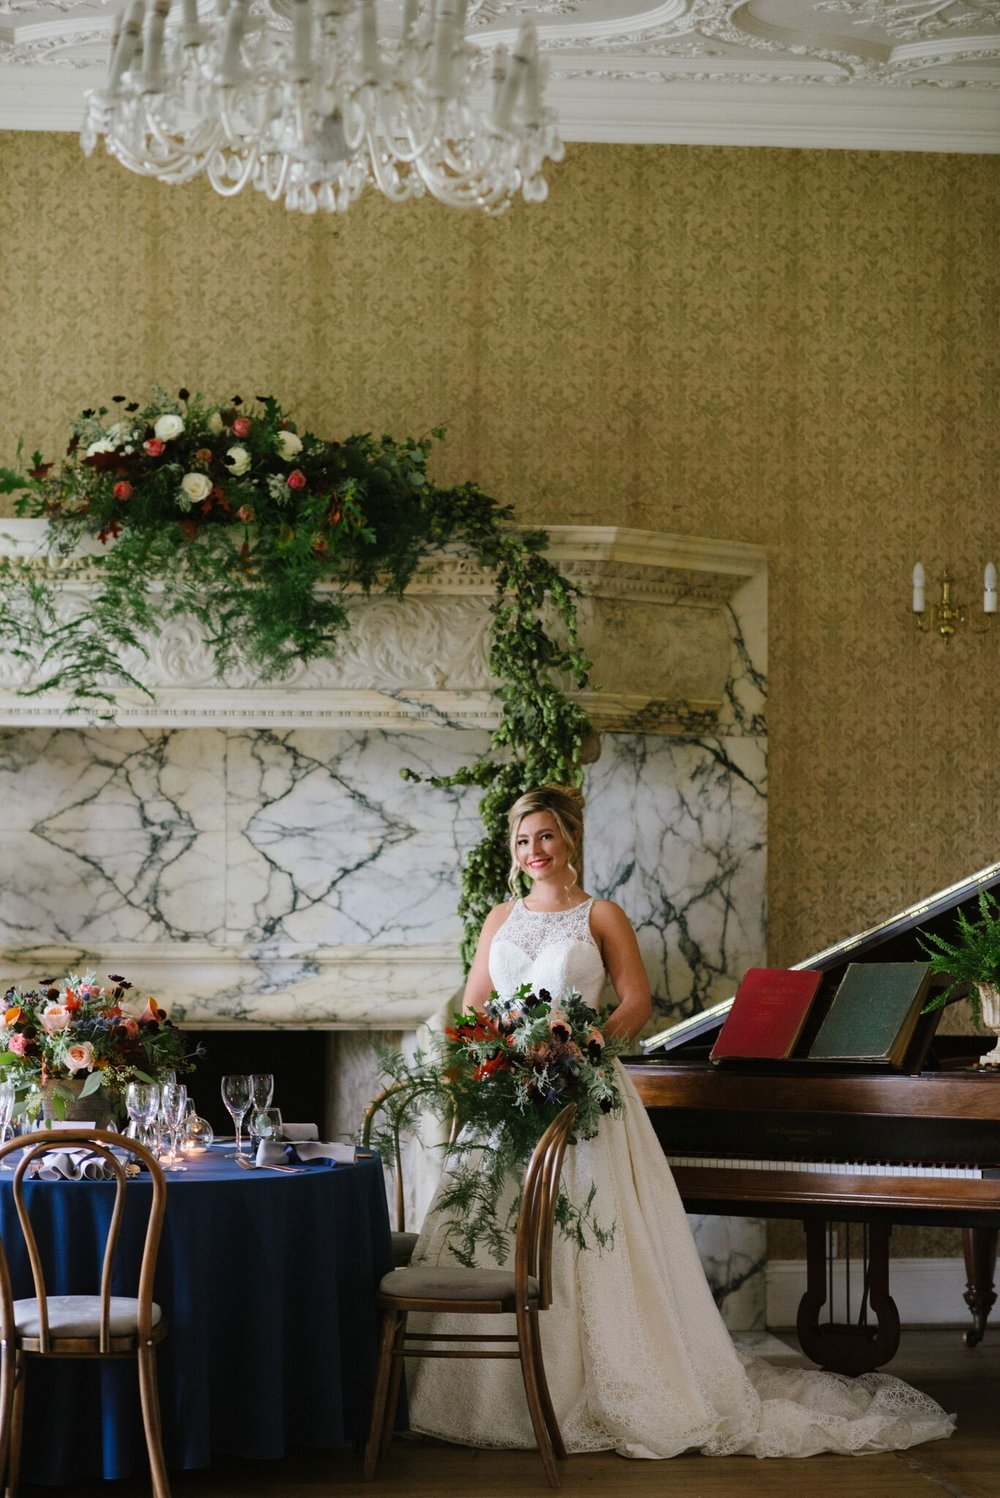 The ENGLISH WEDDING BLOG - Rich and opulent wedding styling from Balcombe Place, West Sussex